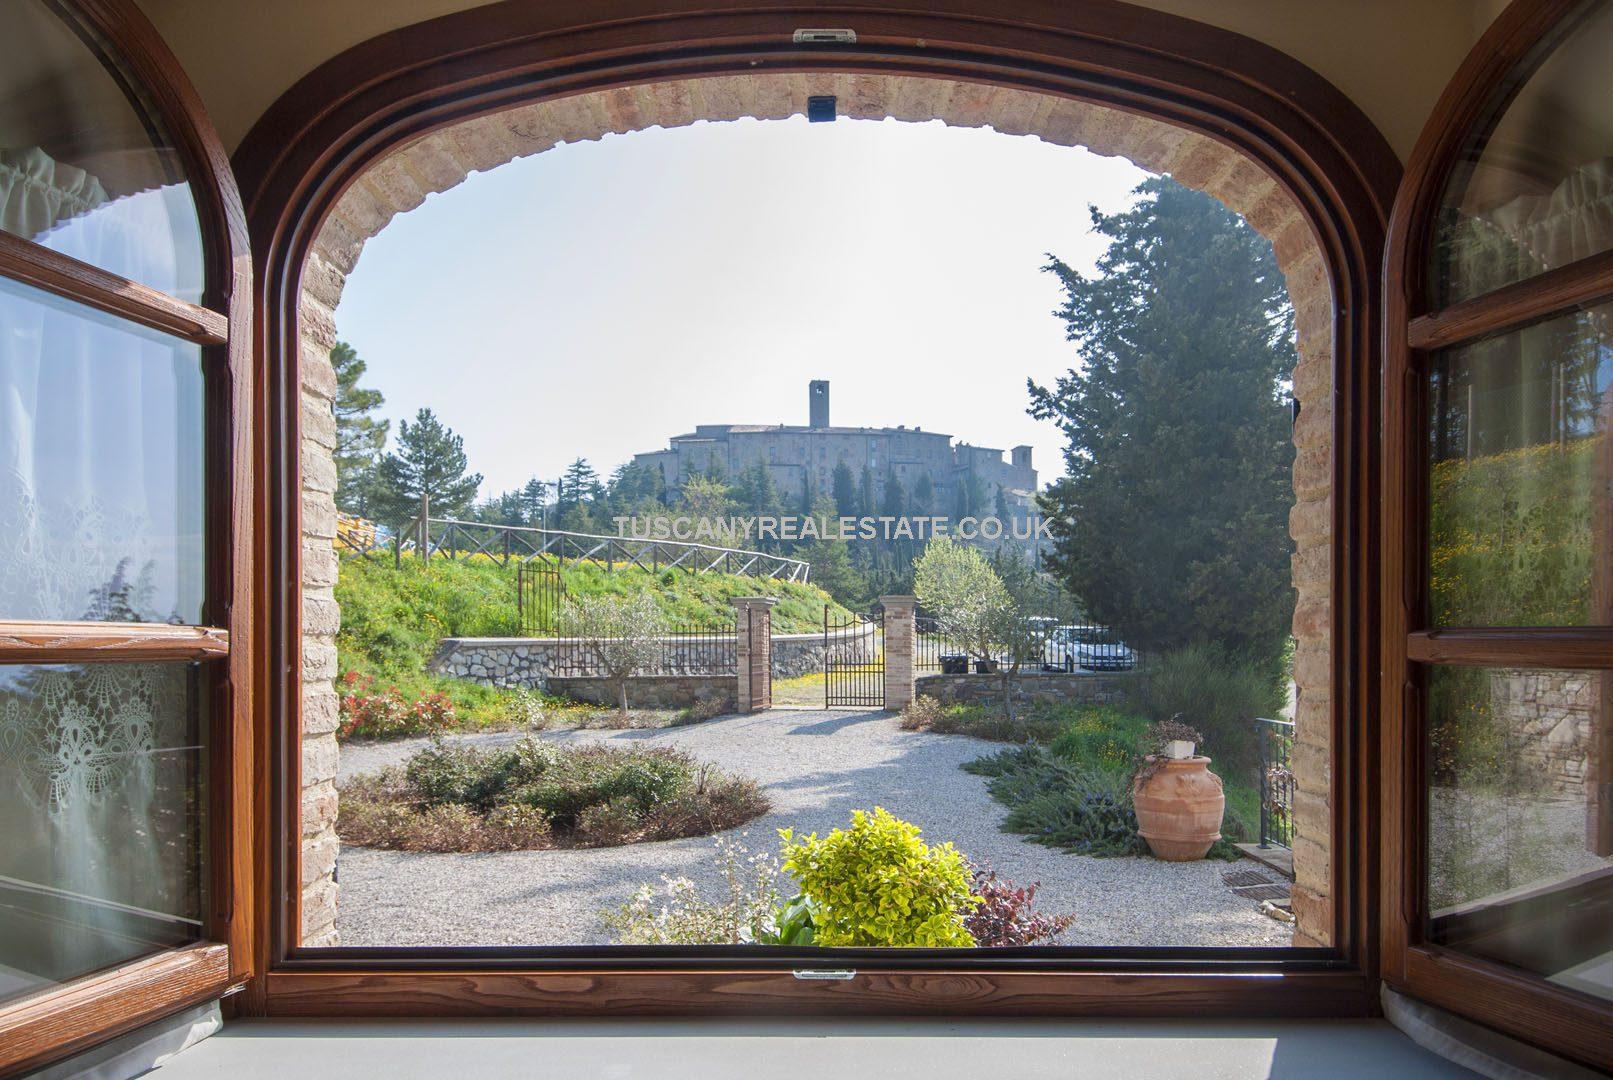 Newly built 4/5 bed farmhouse home, built in traditional Italian architectural style with modern features and comforts. Fantastic views.